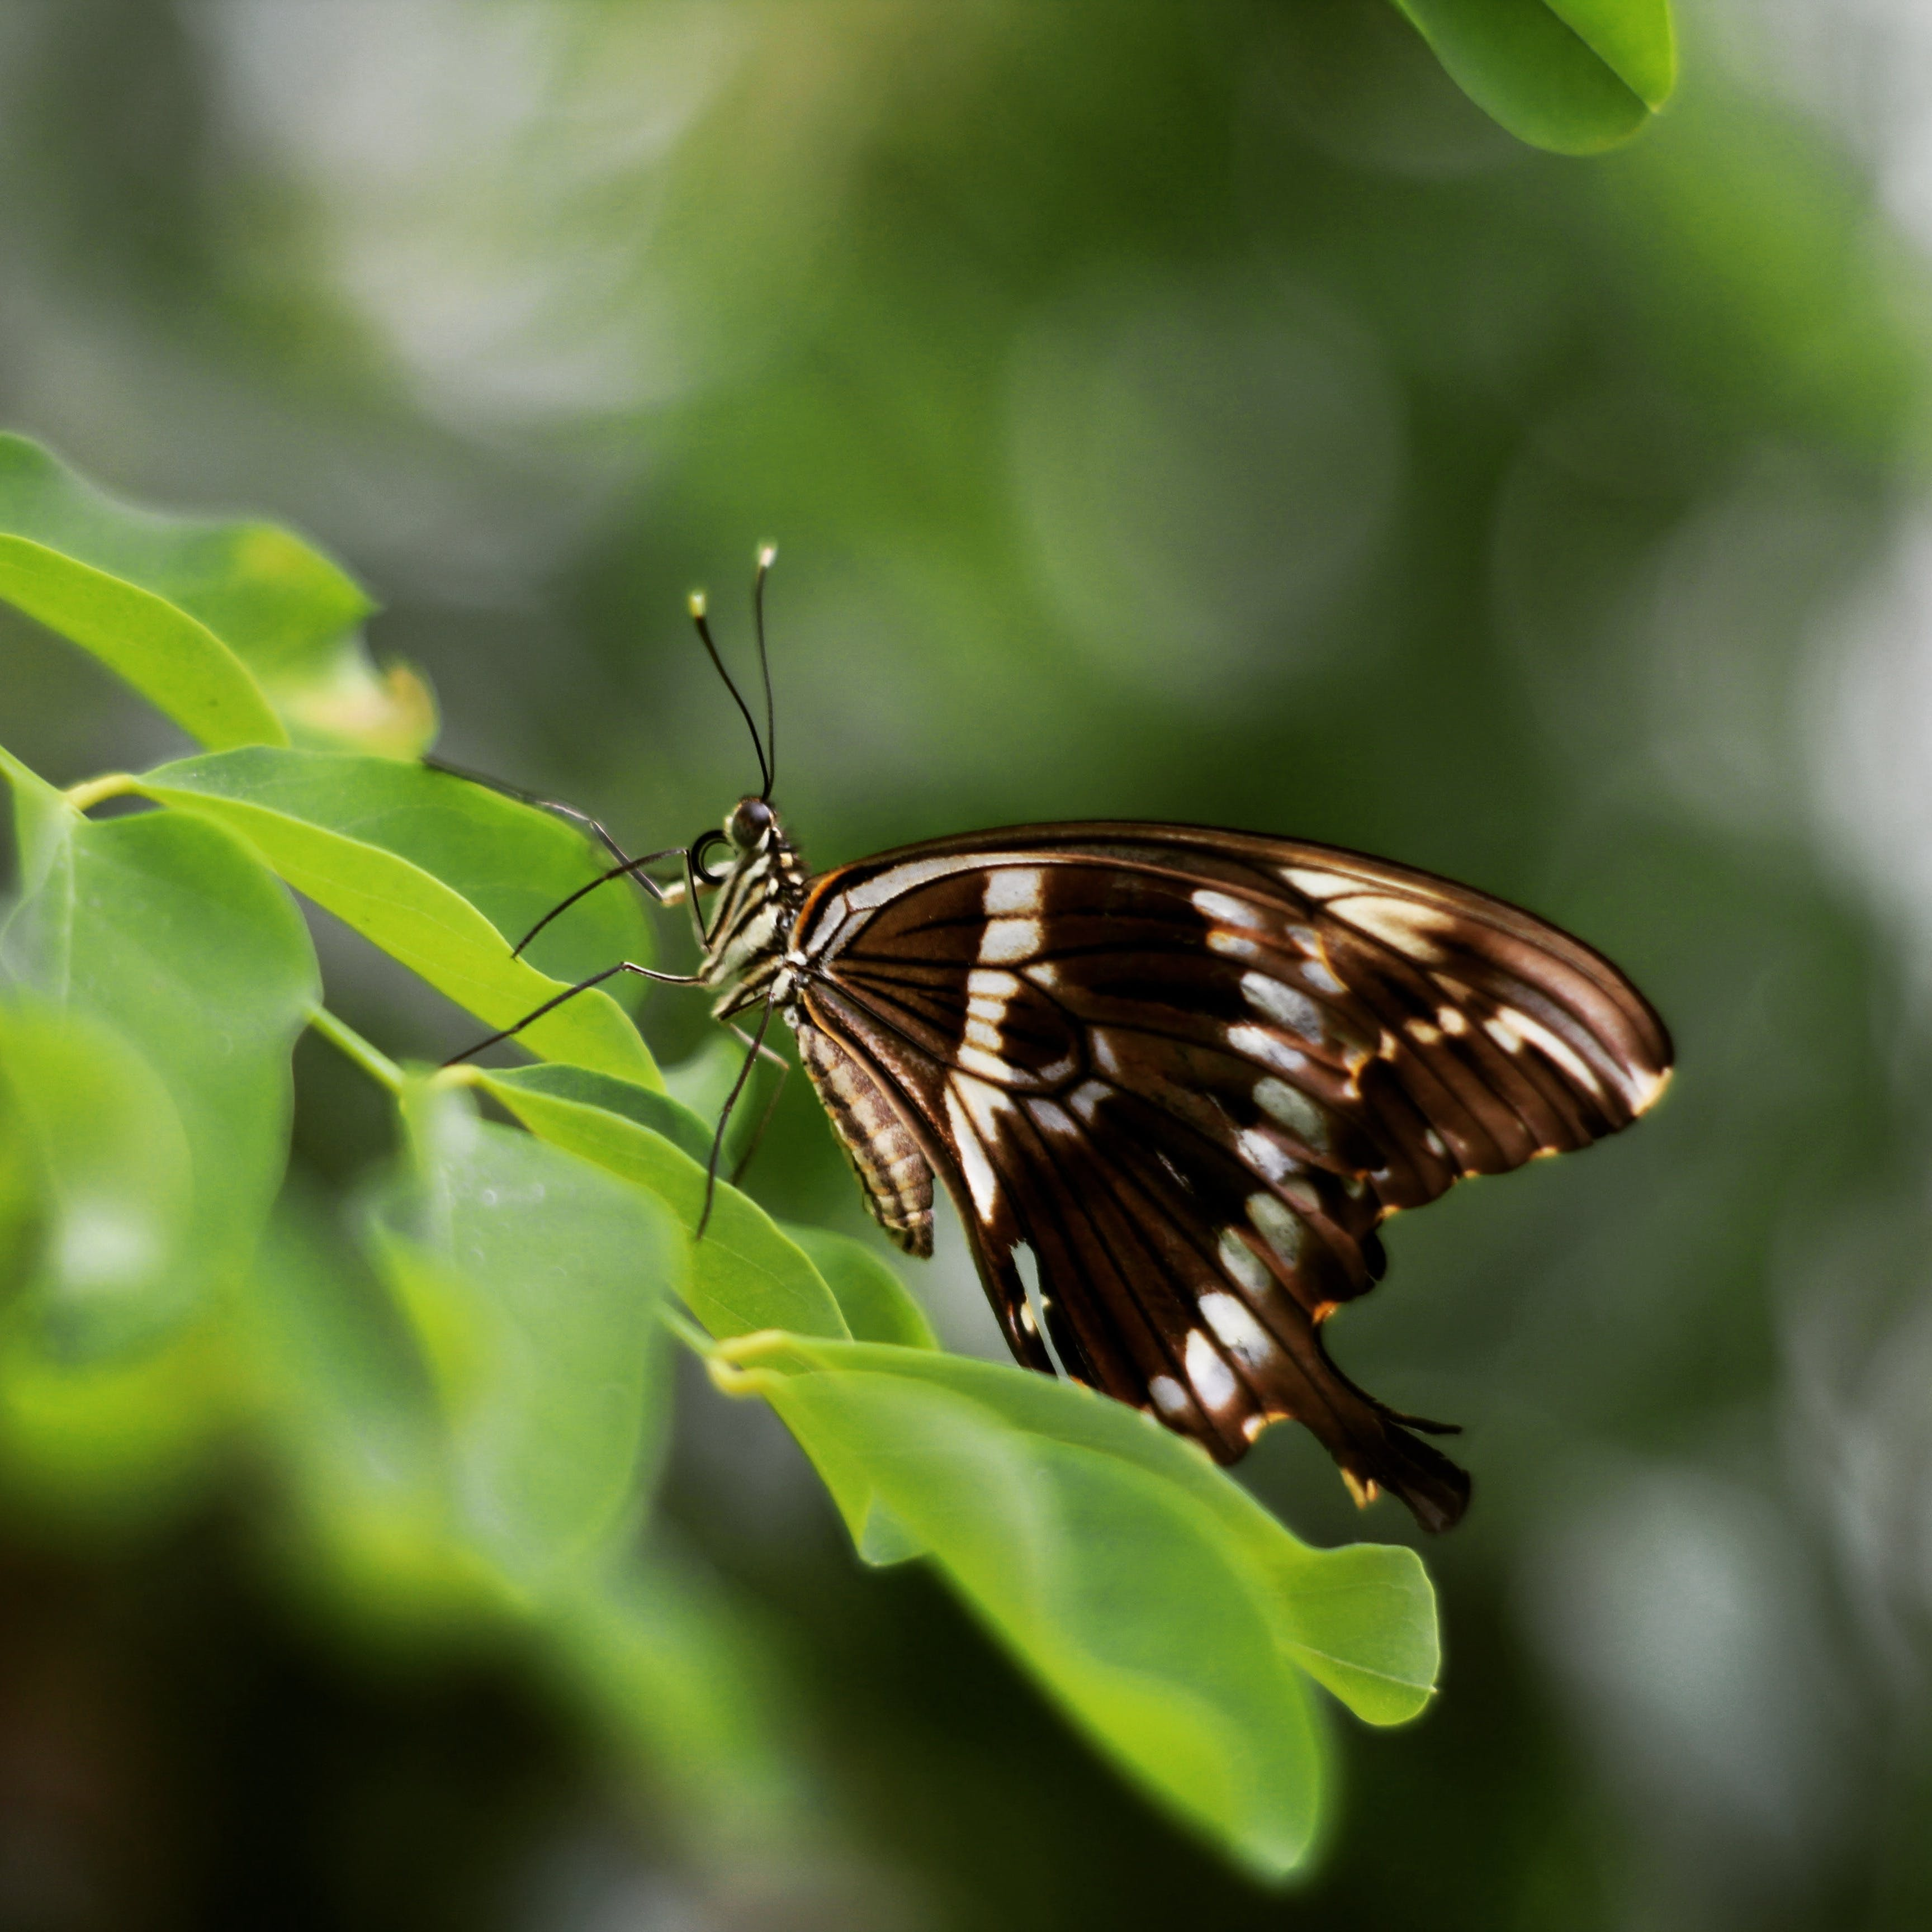 Free stock photo of #butterfly #nature #wildlife #brown #leaves